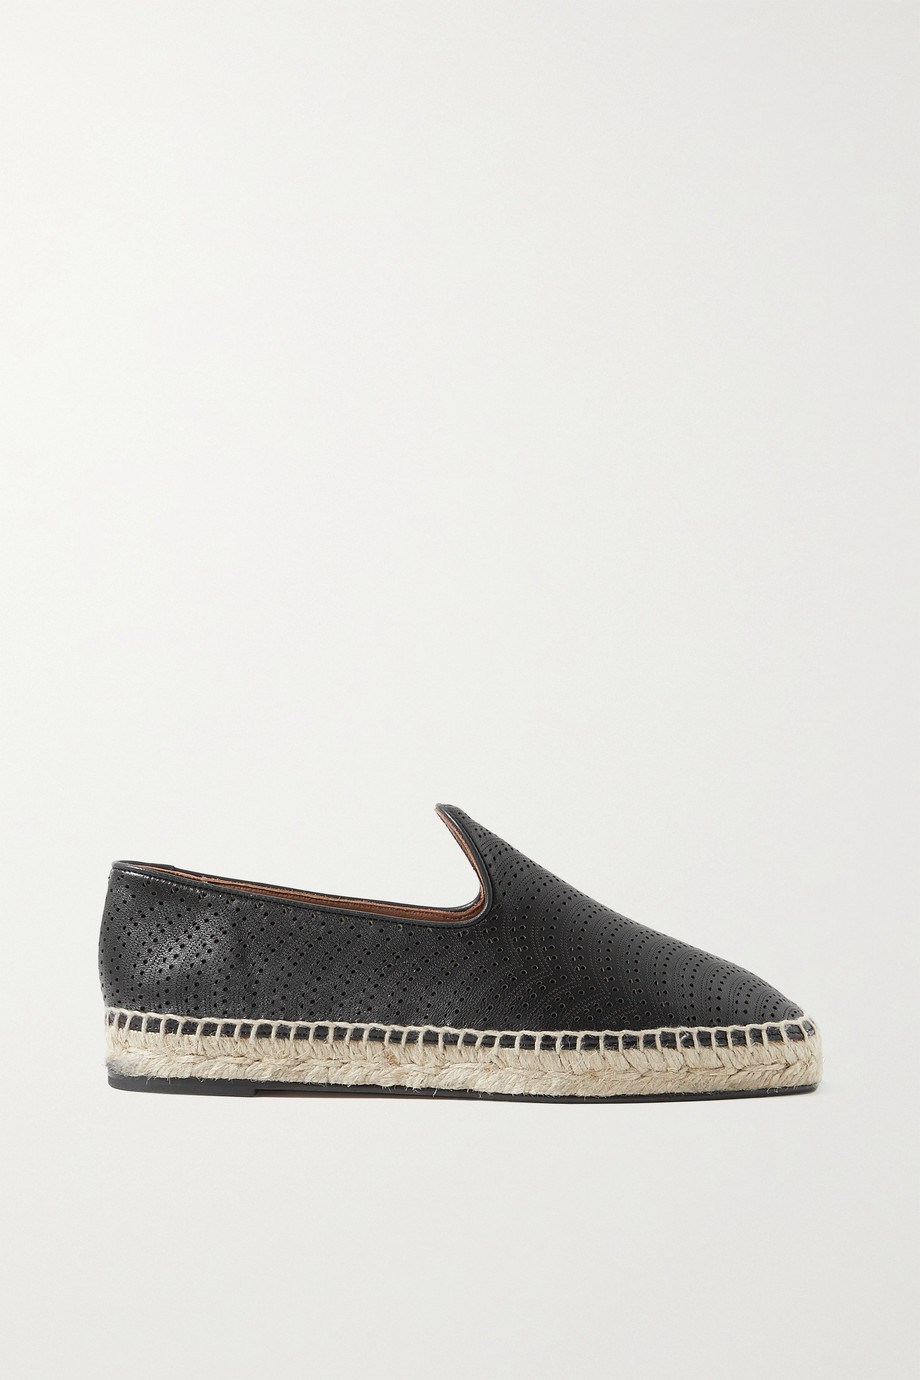 ALAÏA Laser-cut leather espadrilles